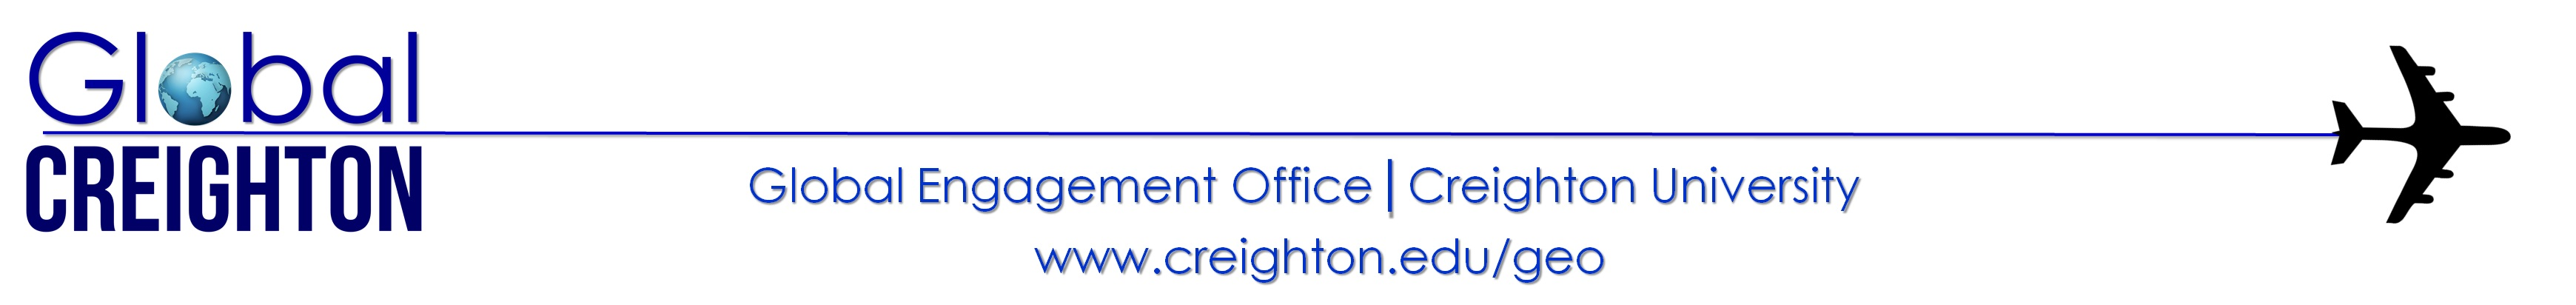 Global Engagement Office (GEO) - Creighton University